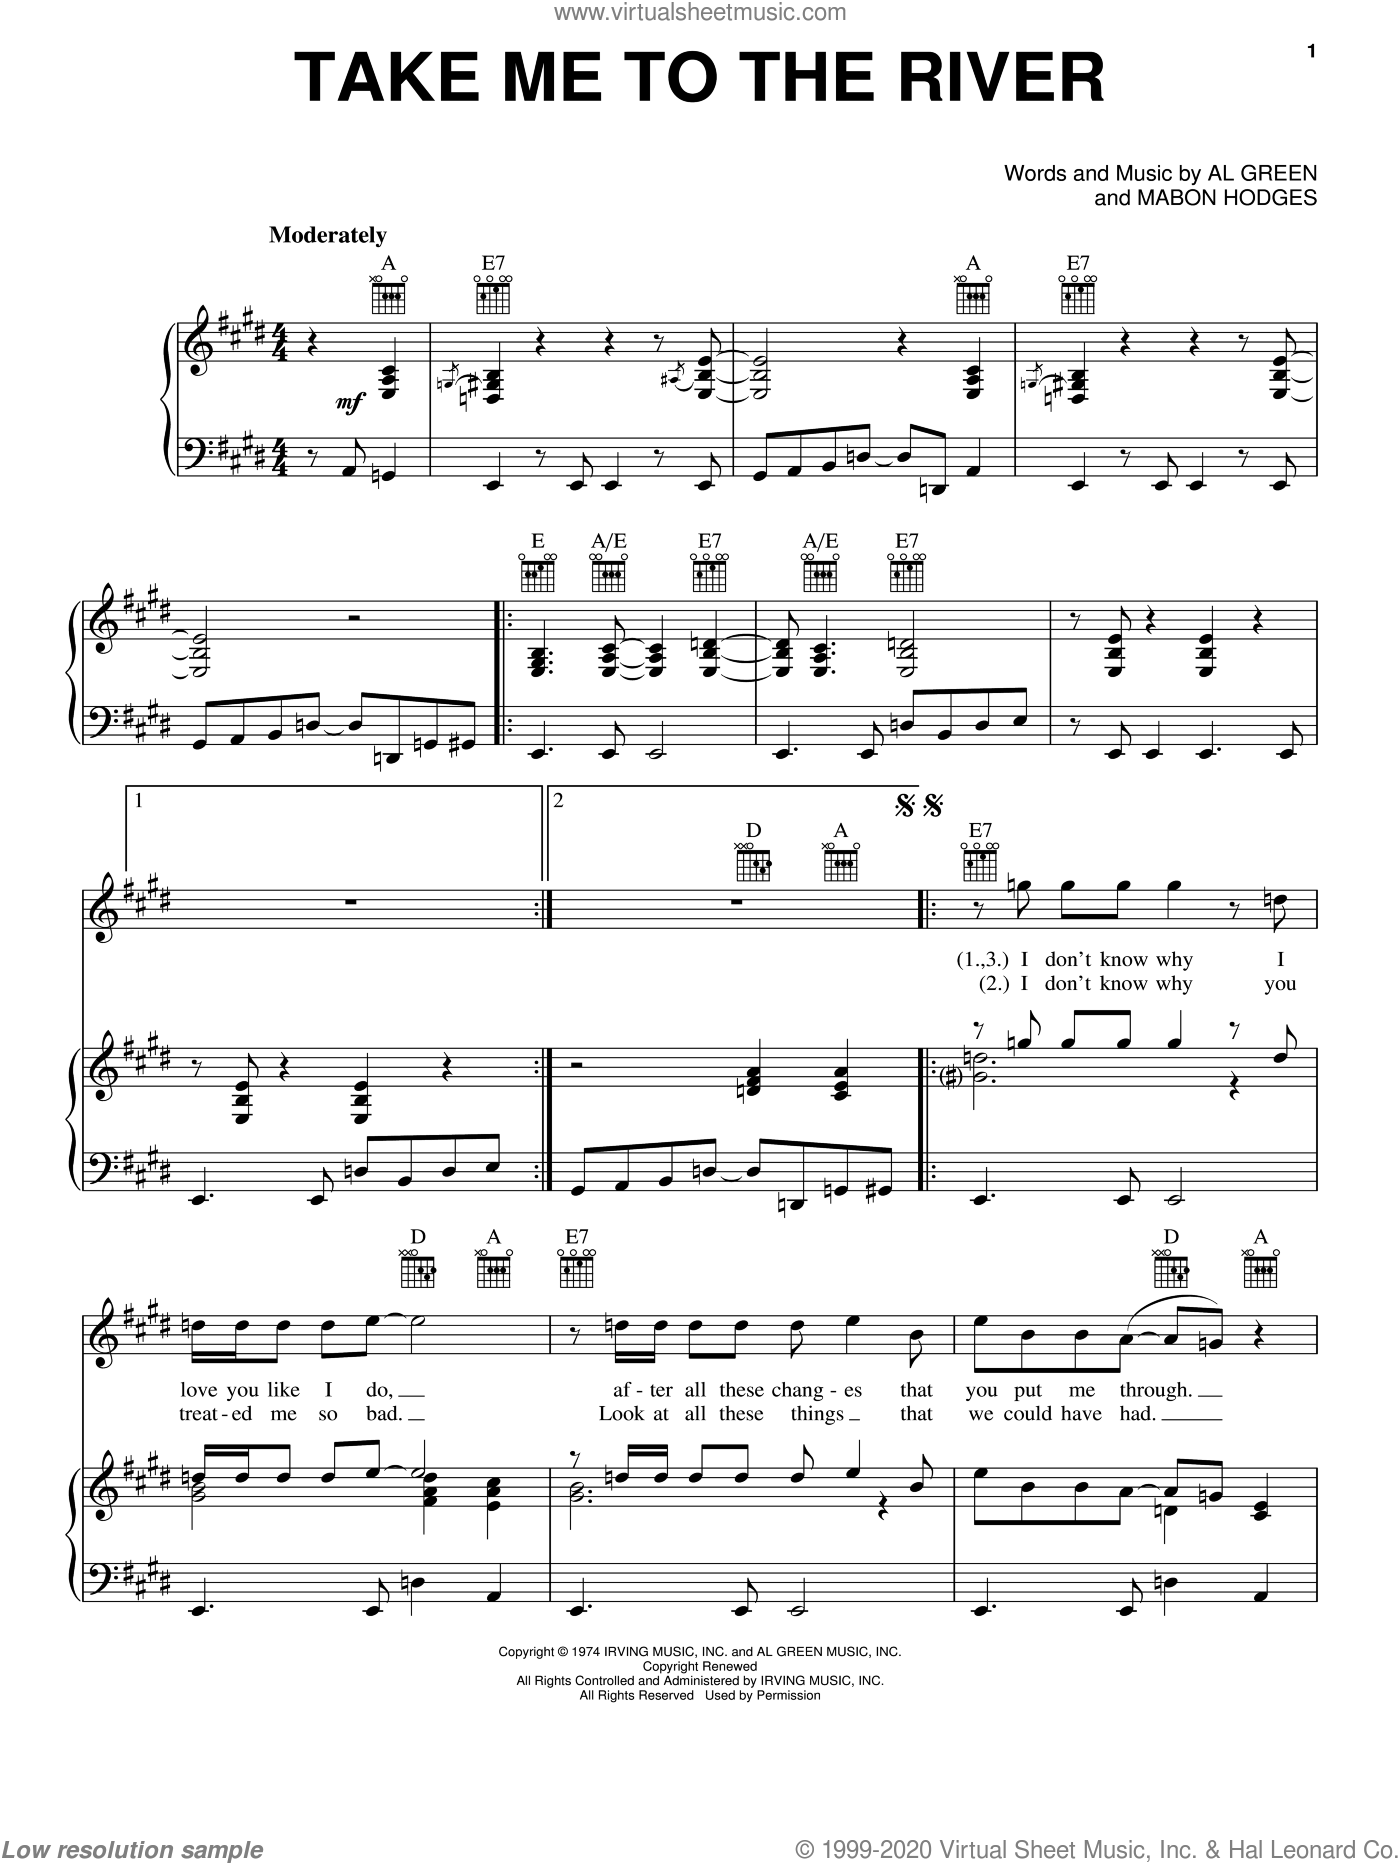 Take Me To The River sheet music for voice, piano or guitar by Al Green, Annie Lennox, Talking Heads and Mabon Hodges, intermediate skill level